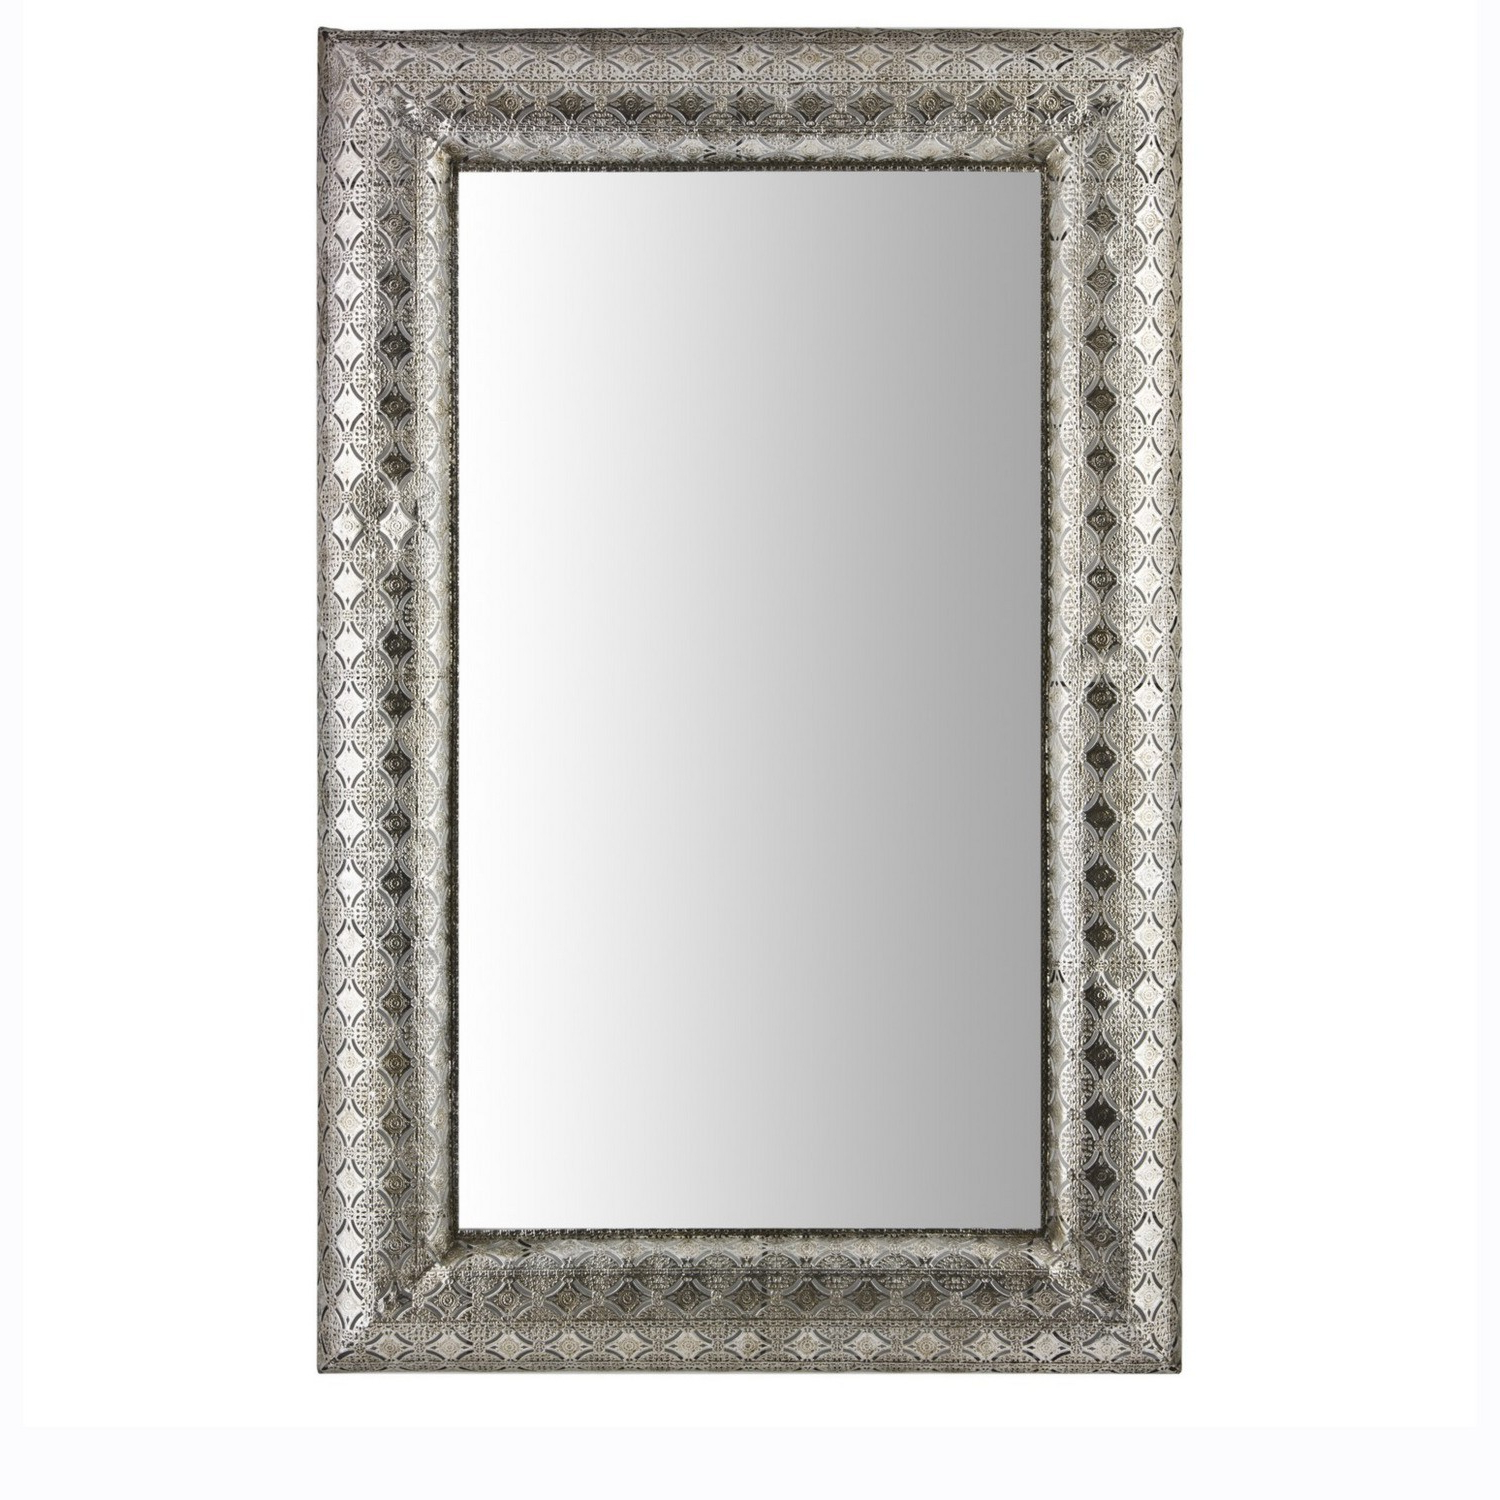 Large Silver Wall Mirrors Throughout Fashionable Mirrors (View 9 of 20)